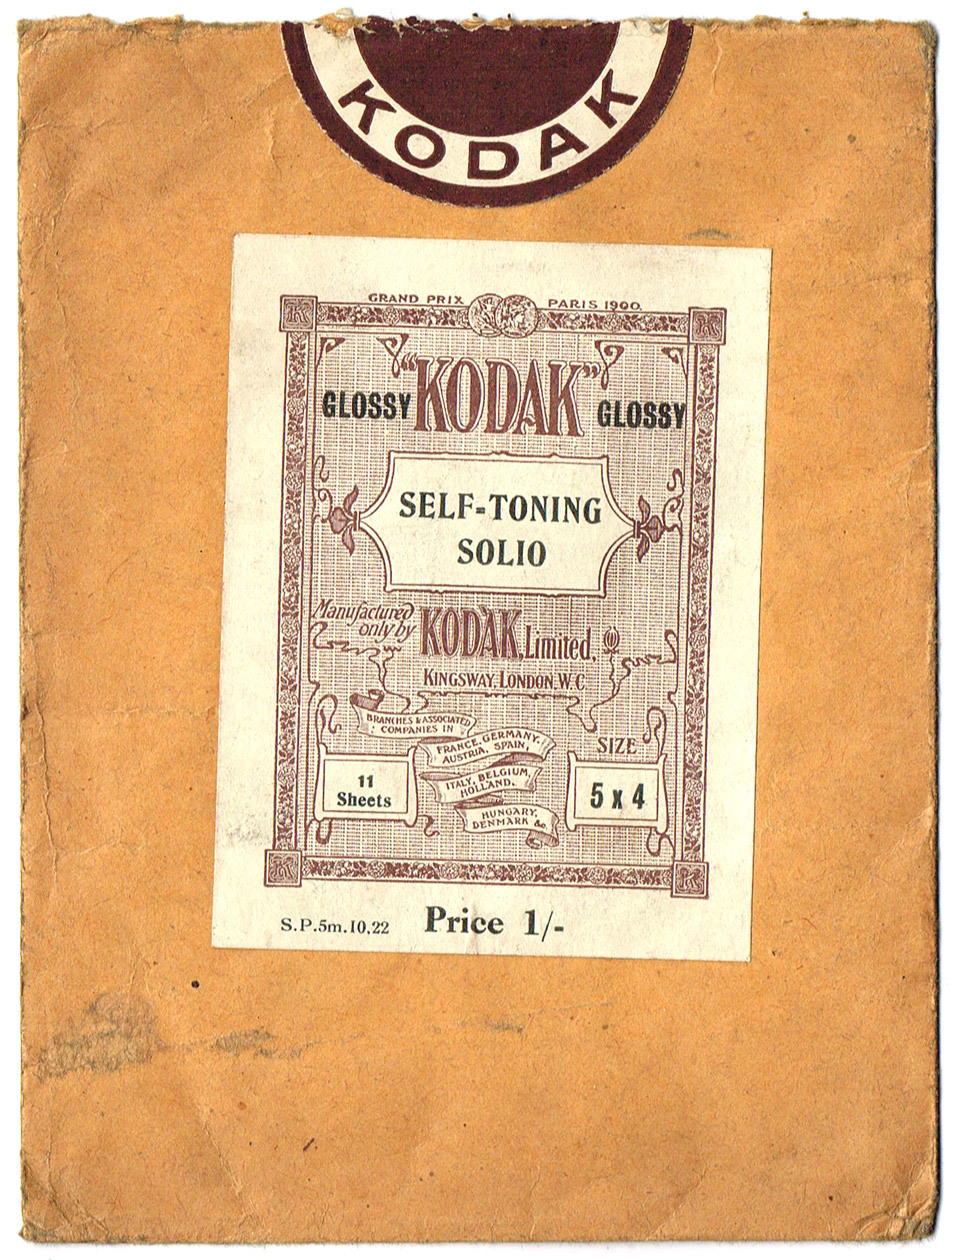 Kodak Glossy Self-toning solio, 11 sheets of 5x4 (empty package).